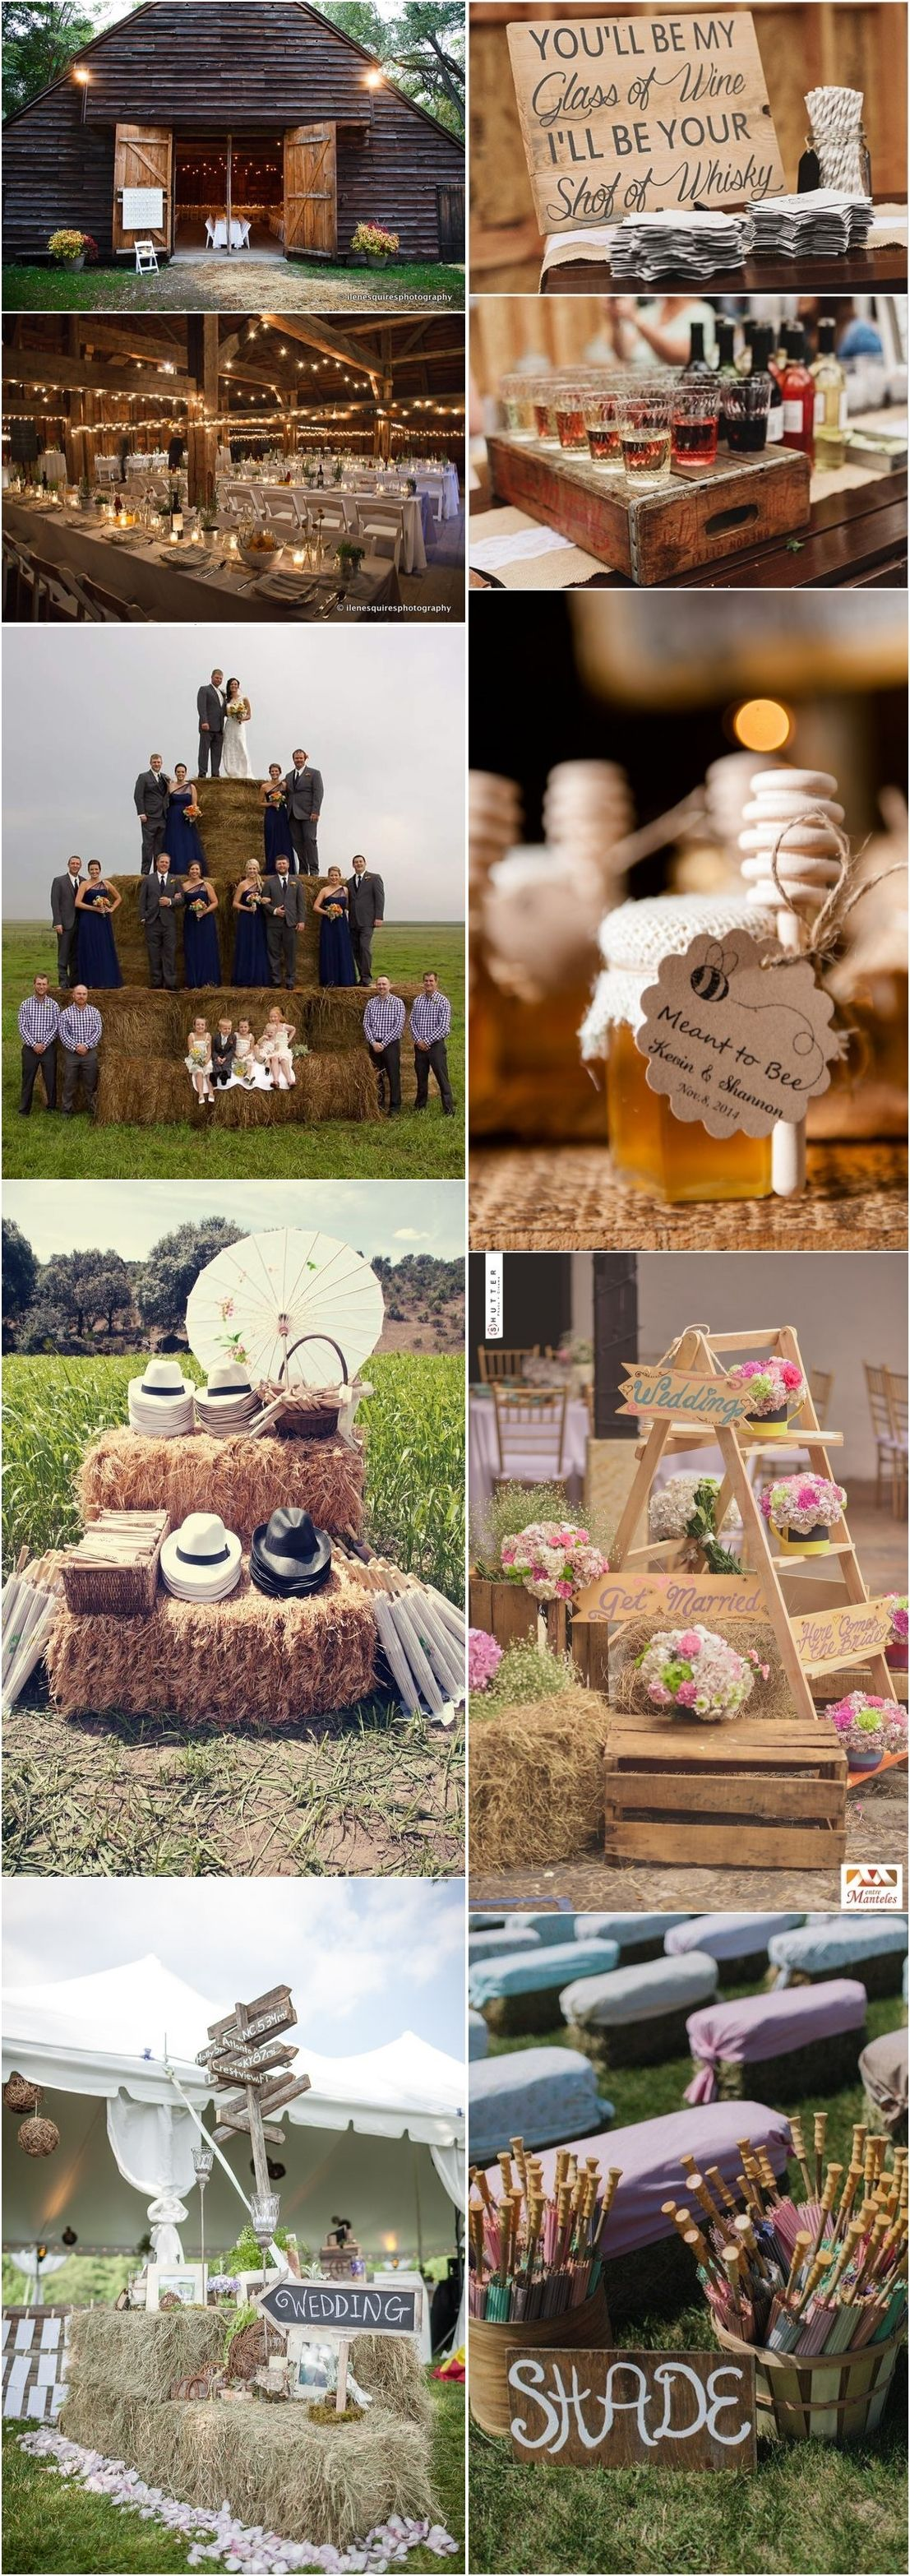 25 Gorgeous Country Rustic Wedding Ideas for